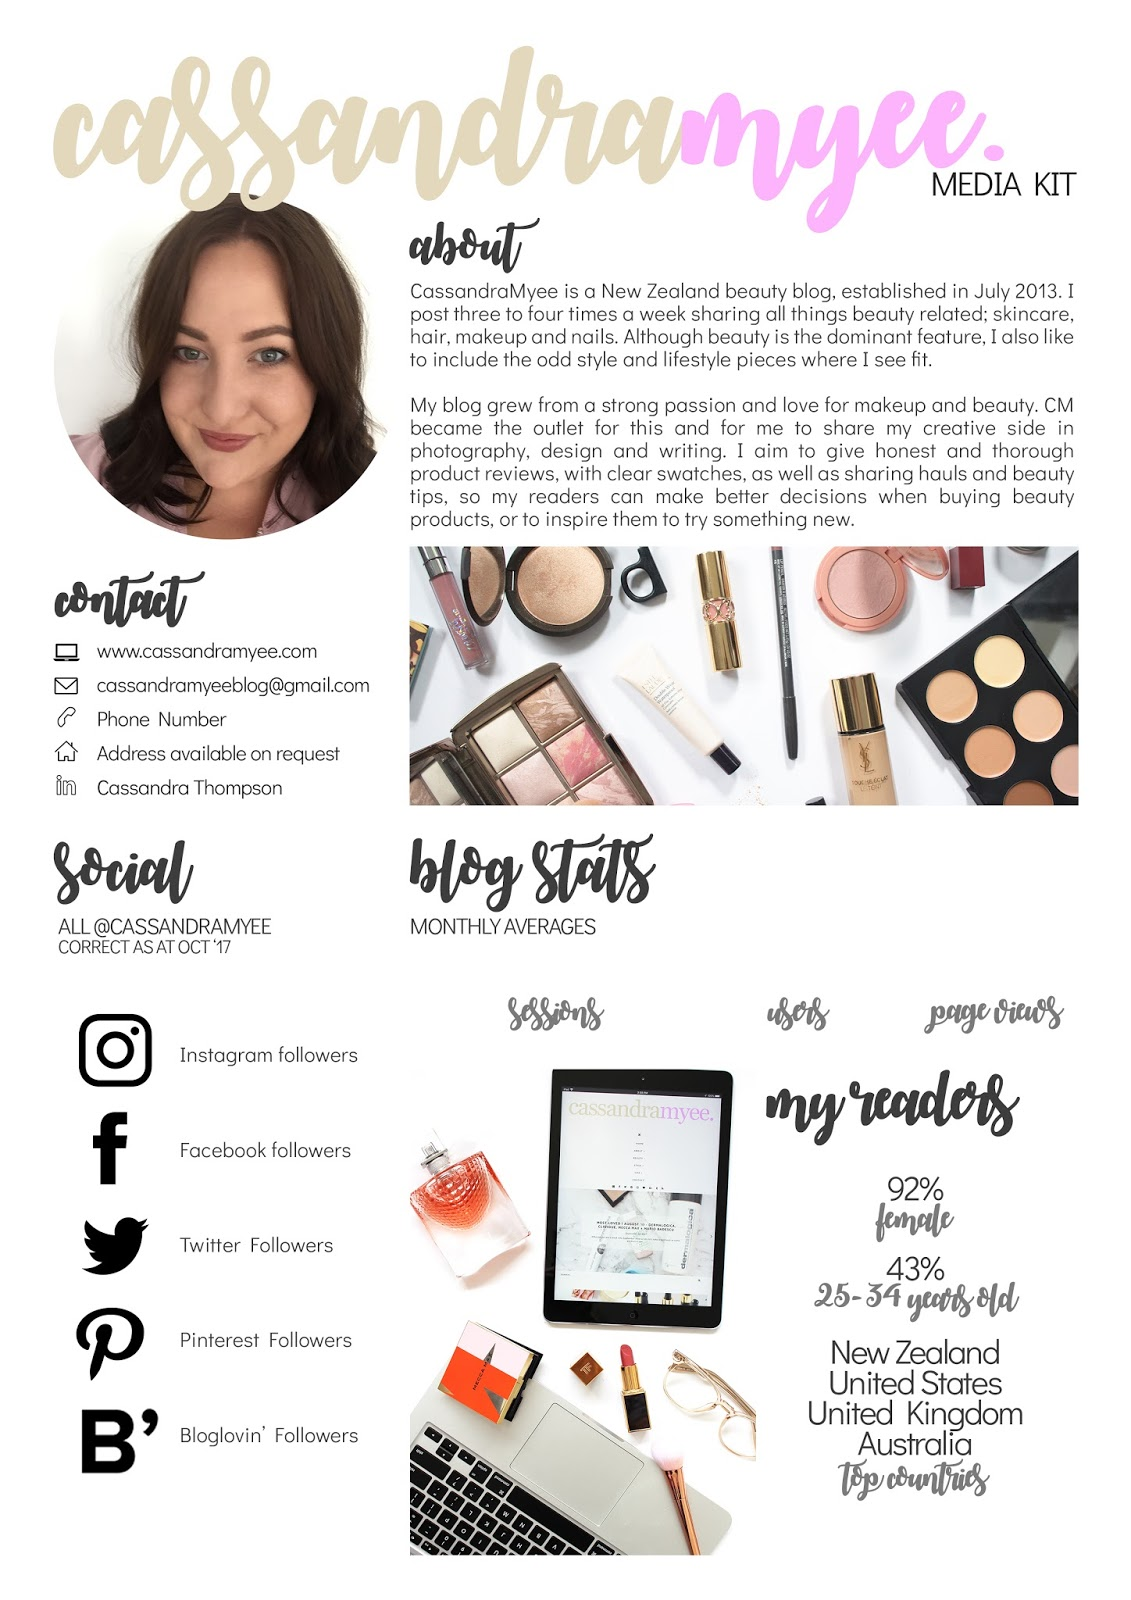 MEDIA KIT BASICS | From one blogger to another - CassandraMyee